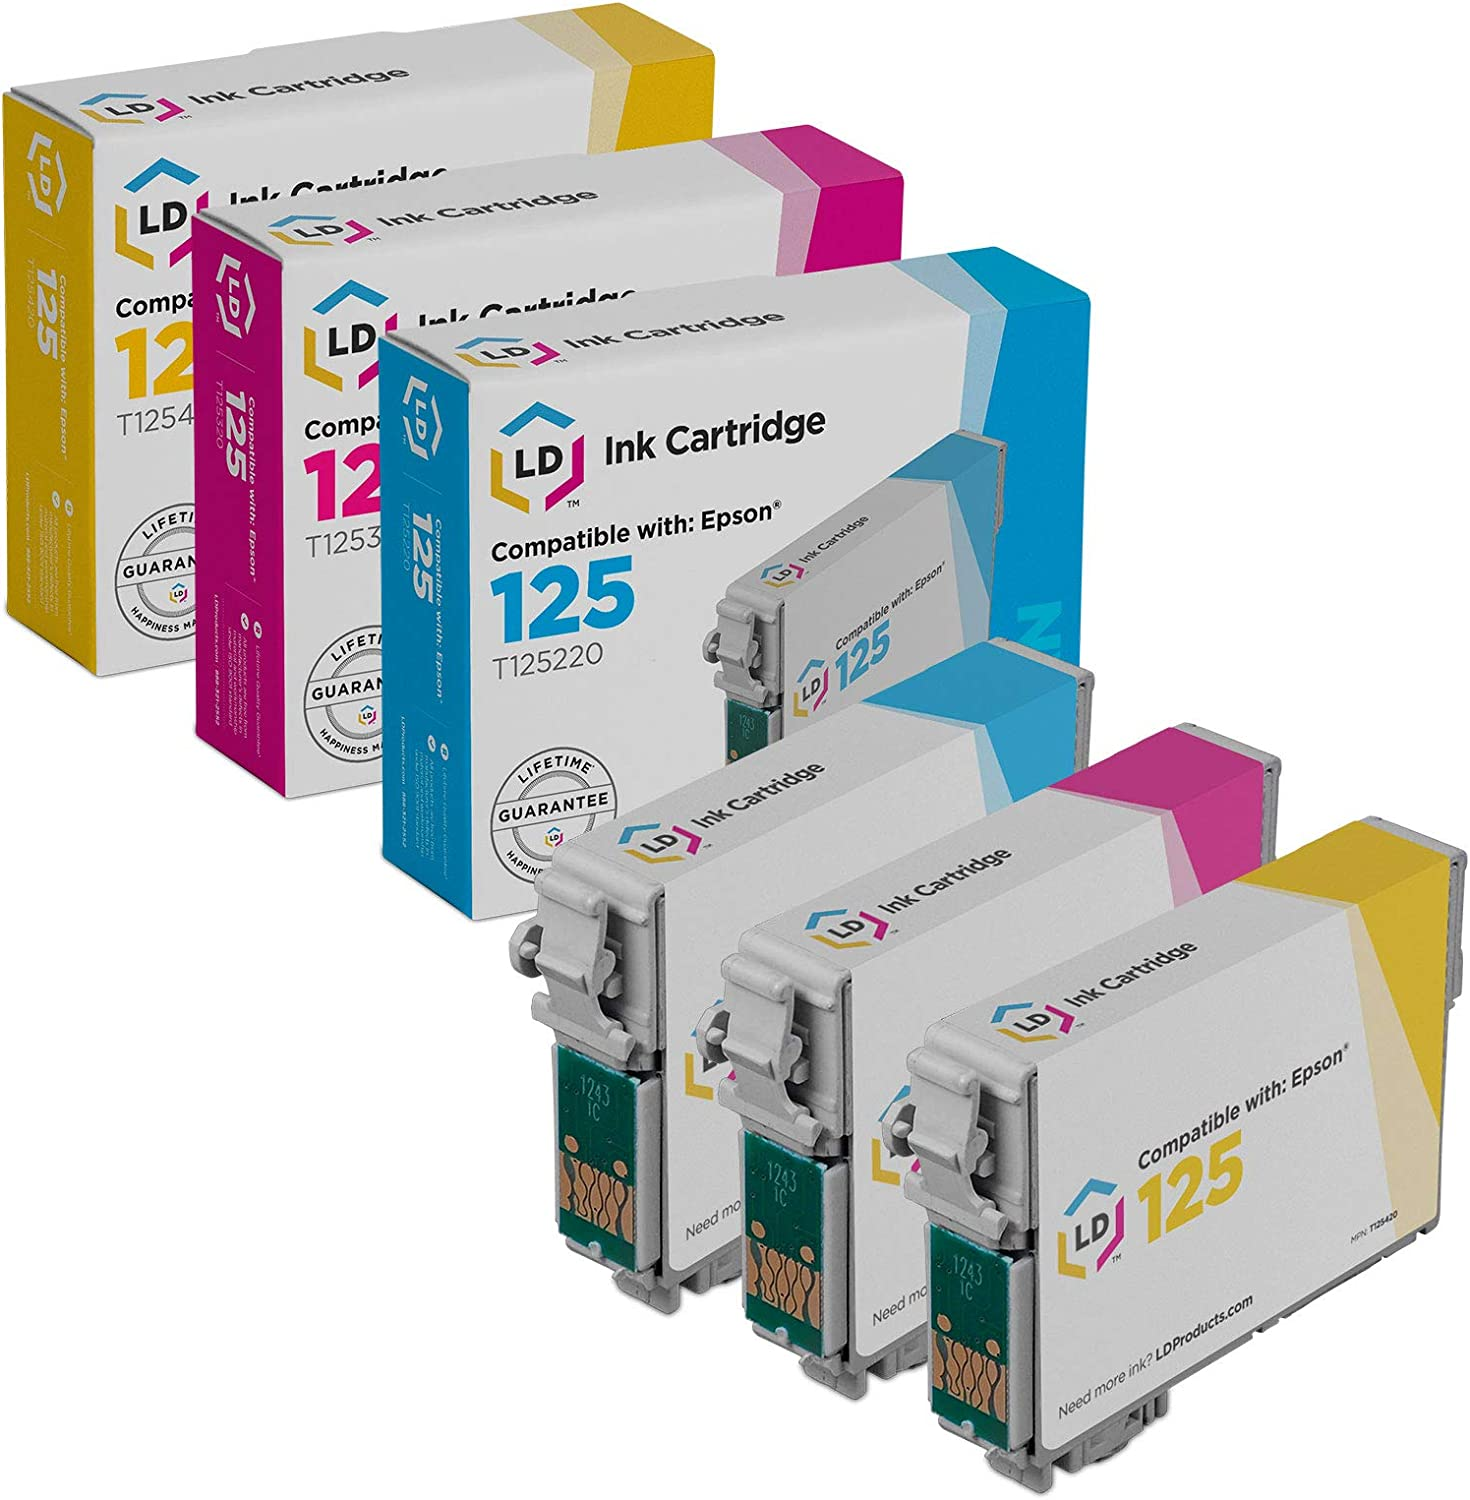 LD Remanufactured Ink Cartridge Replacement for Epson 125 (Cyan, Magenta, Yellow 3-Pack)